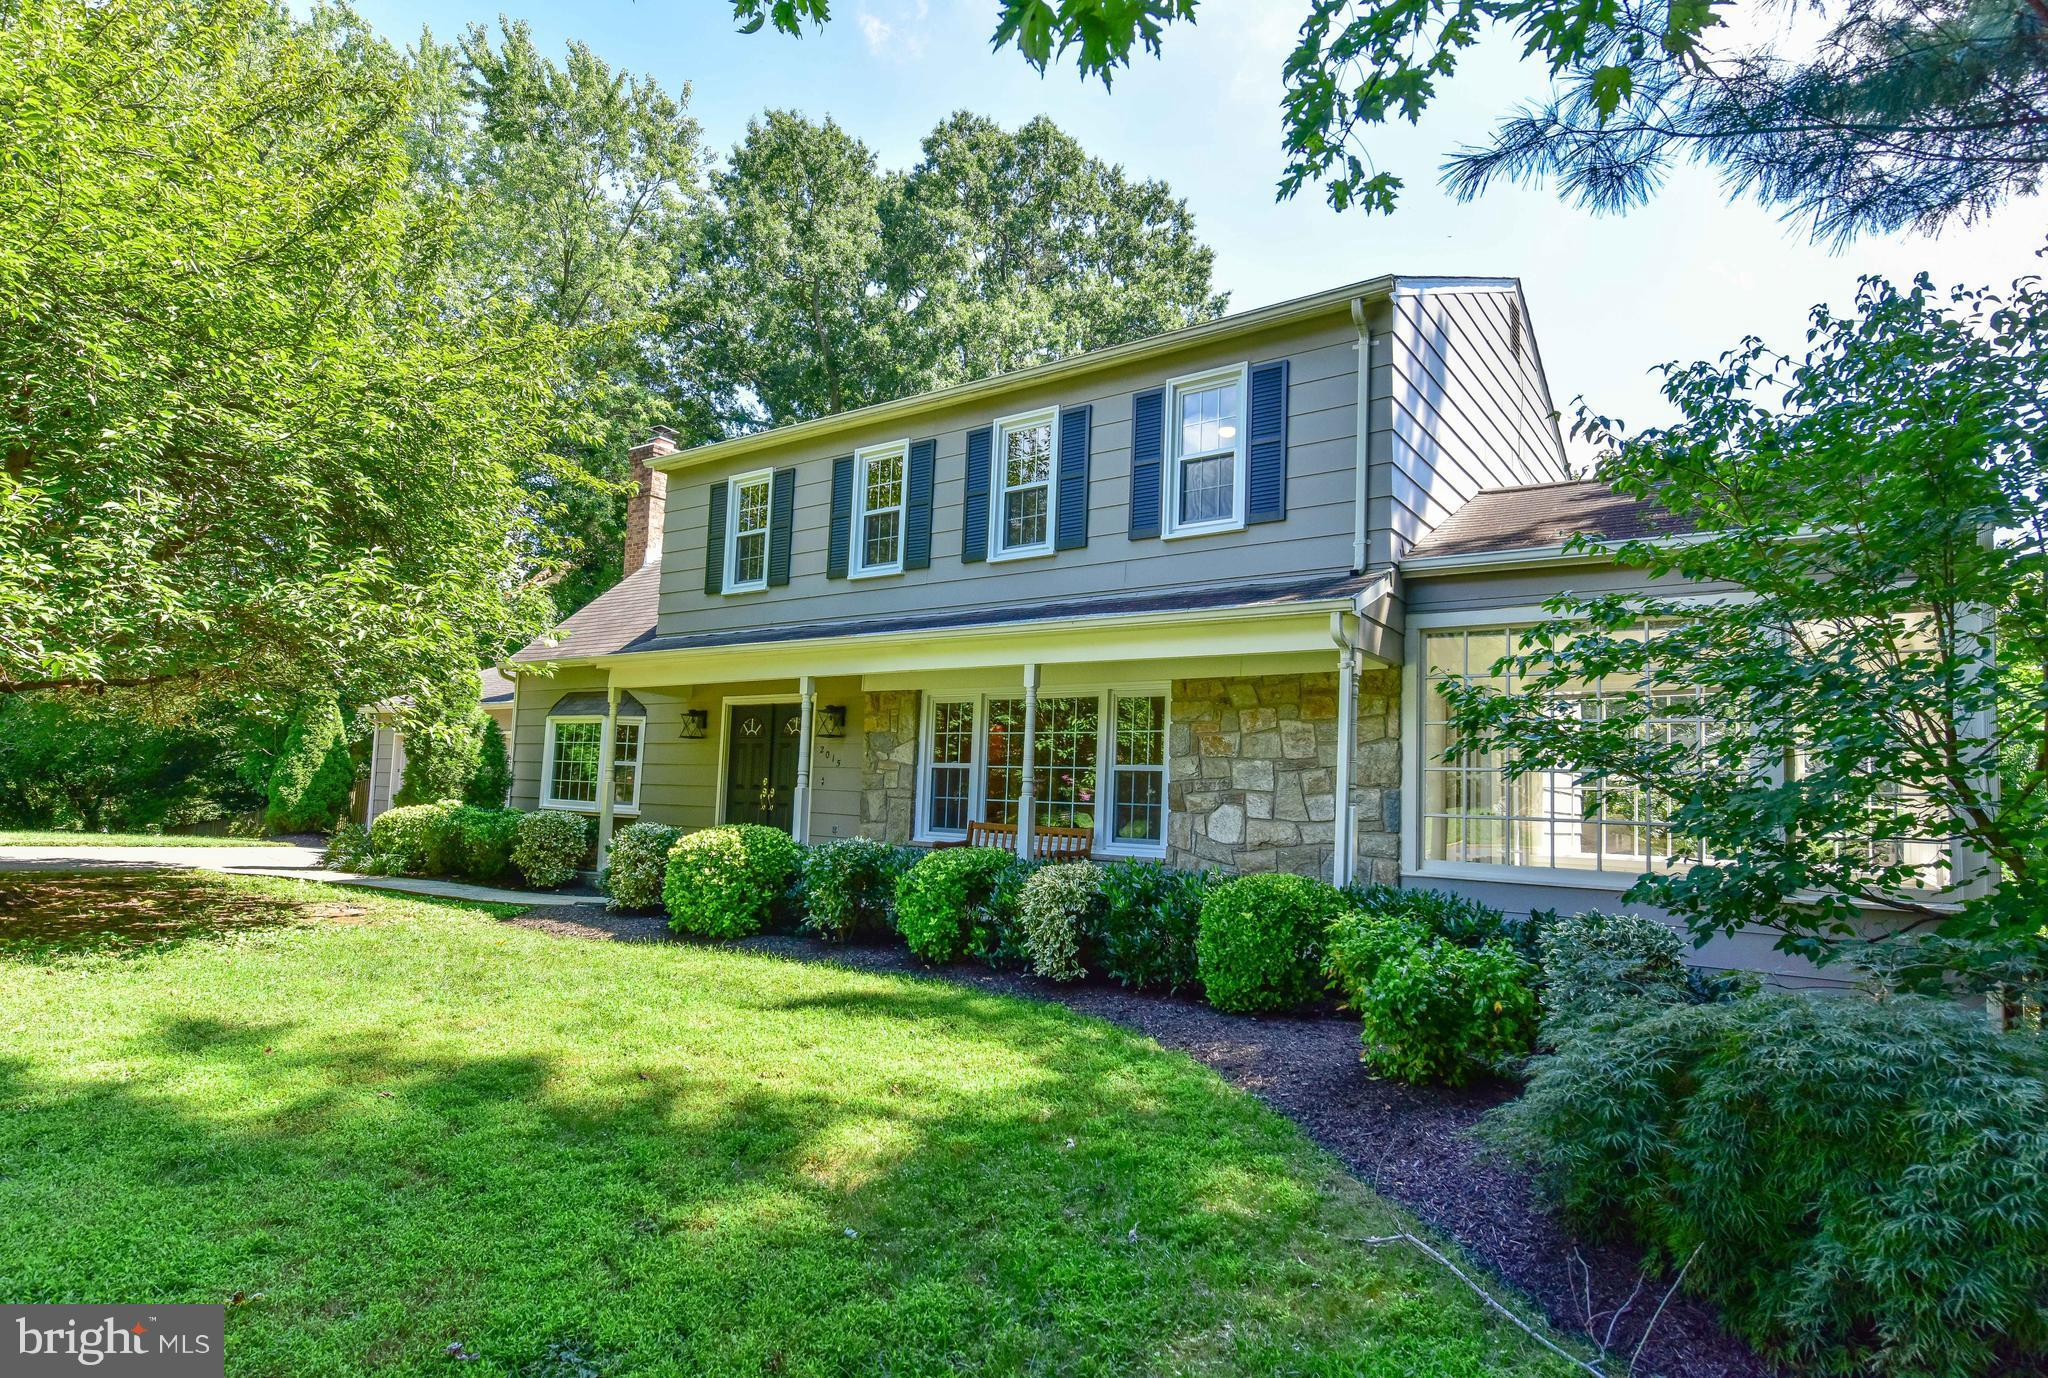 Open Sun 12-2pm! Wow - GREAT PRICE! Don't miss out! Beautiful & spacious 5BR, 3.5BA colonial.Elegant wood floors. Flooded w natural light!  KIT w SS appliances, new granite counters & cheerful breakfast room. Spacious LR. Stone-floored sunroom. FR w wood-burning FP.  Sumptuous freshly painted MBR w sitting rm.Fully fin bsmt. Expansive deck off addl sunrm + fenced yard.2car gar.